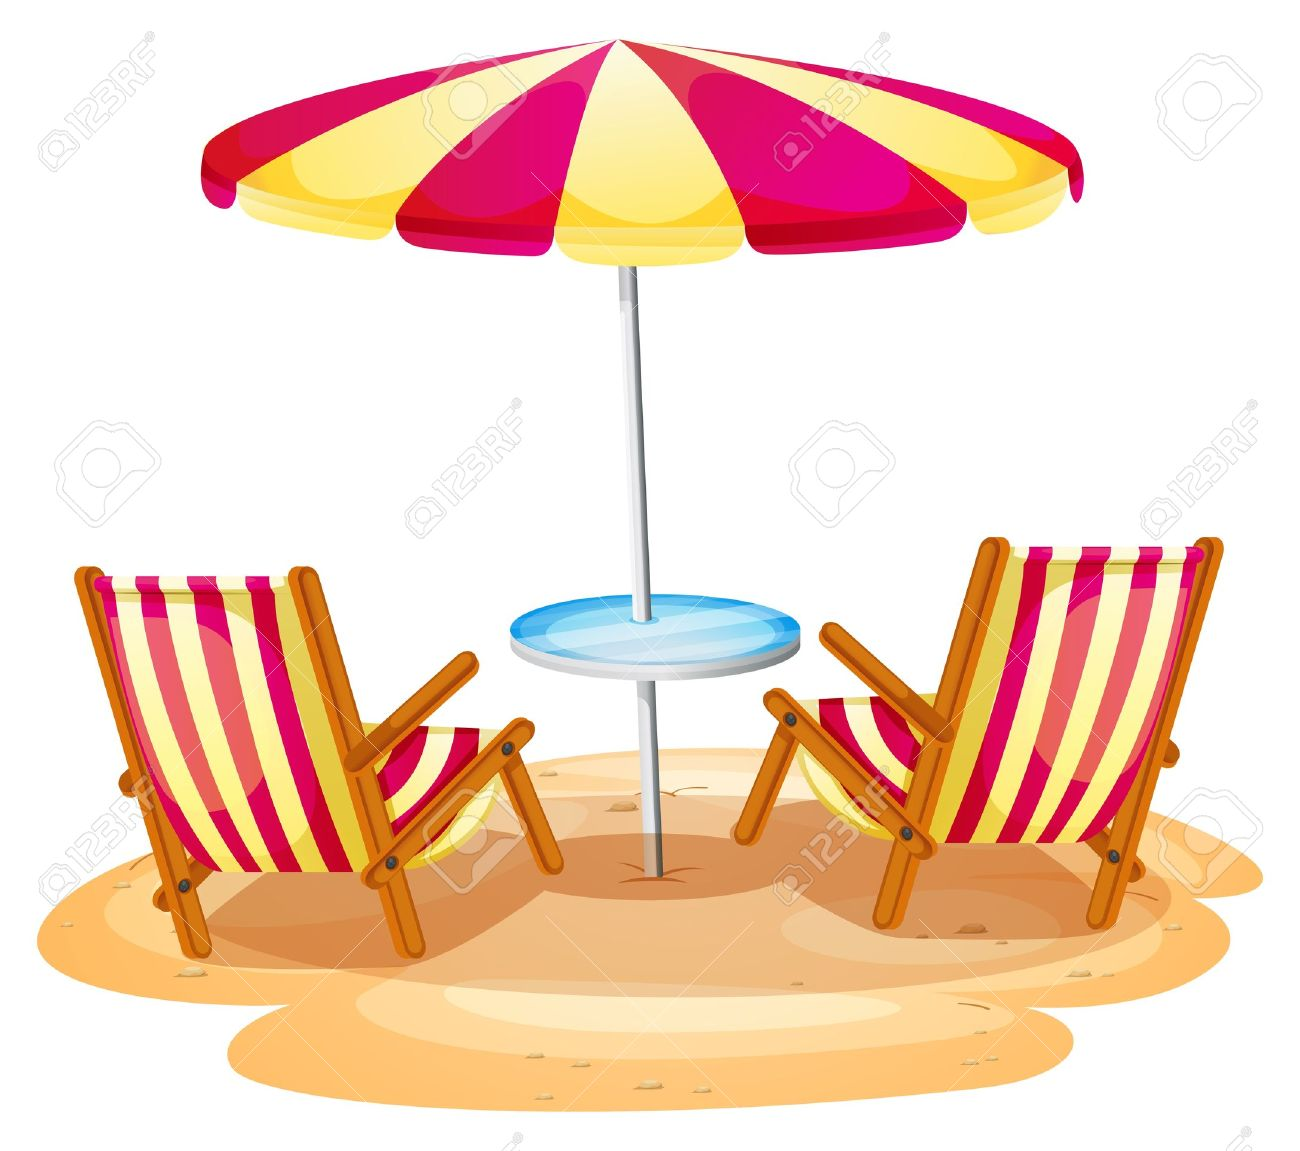 Beach lounge chair png - Beach Chair Cartoon Jpg 1300x1150 White Beach Chair Cartoon